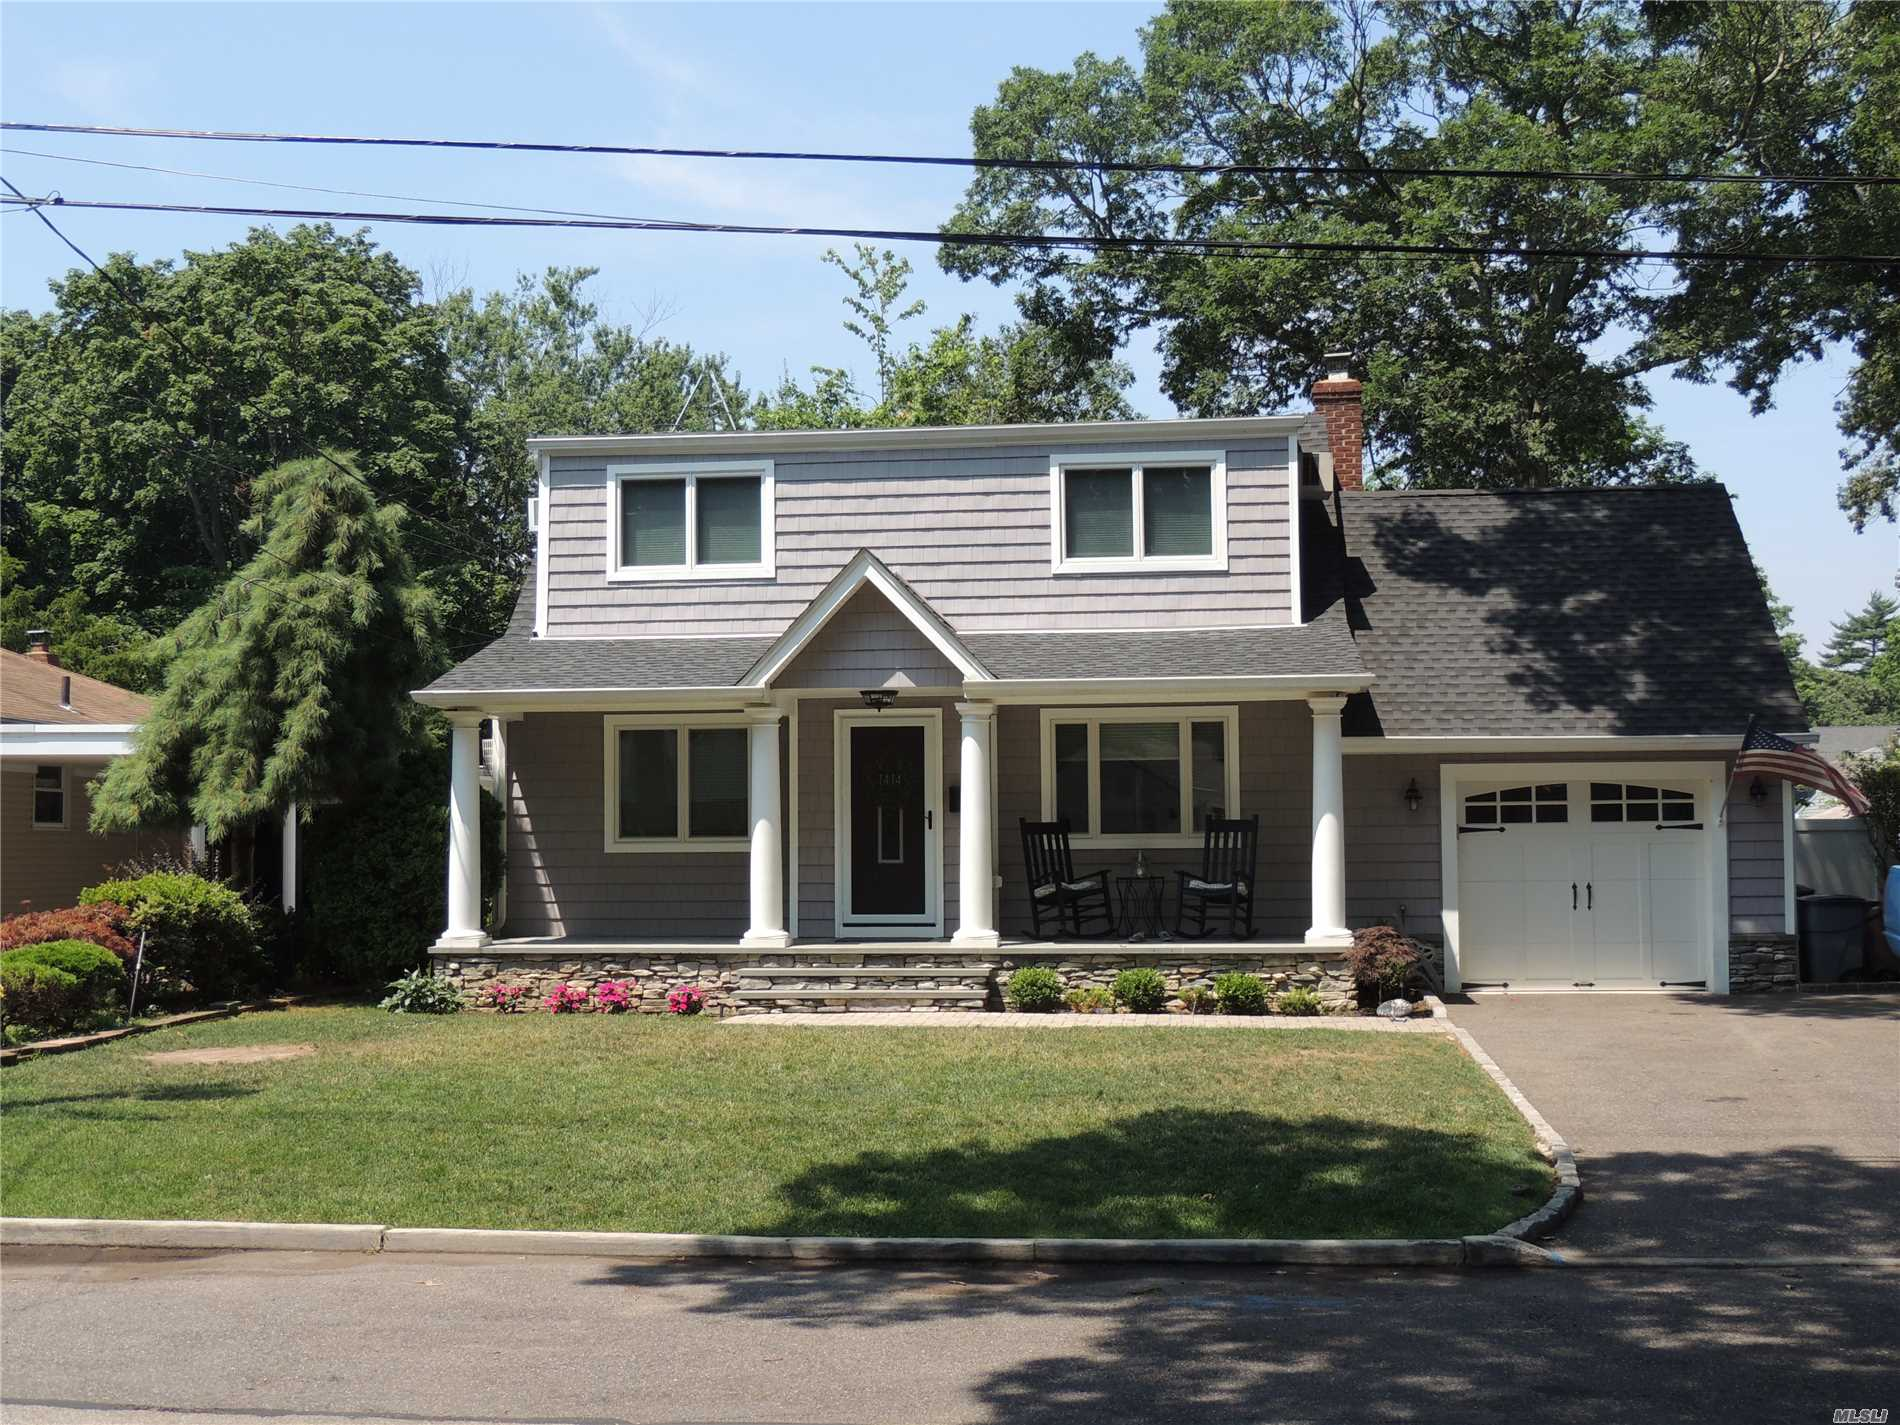 Click Those Ruby Red Shoes And Repeat After Me There Is No Place Like Home..Mint 3/4 Bedroom 2 Bath Colonial Located In A Private Cul-De-Sac..New Roof/Siding/Wndws/Bath..Updated Eik W/Ss Appls..Fdr..Living Rm W/Custom Built Ins & Fam Rm W/Fplc..Gleaming Wd Flrs..Hi-Hats & Crown Molding..Extra Br For Mom..Updated 200 Amp Elec & Boiler/Hot Wtr Htr..King Master Br W/Dbl Closets..Gorgeous Fenced In Huge Bkyd..Prof Land W/Igs & Pavers..Garage W/Huge Loft Stor..Picturesque Front Porch..Low Taxes..